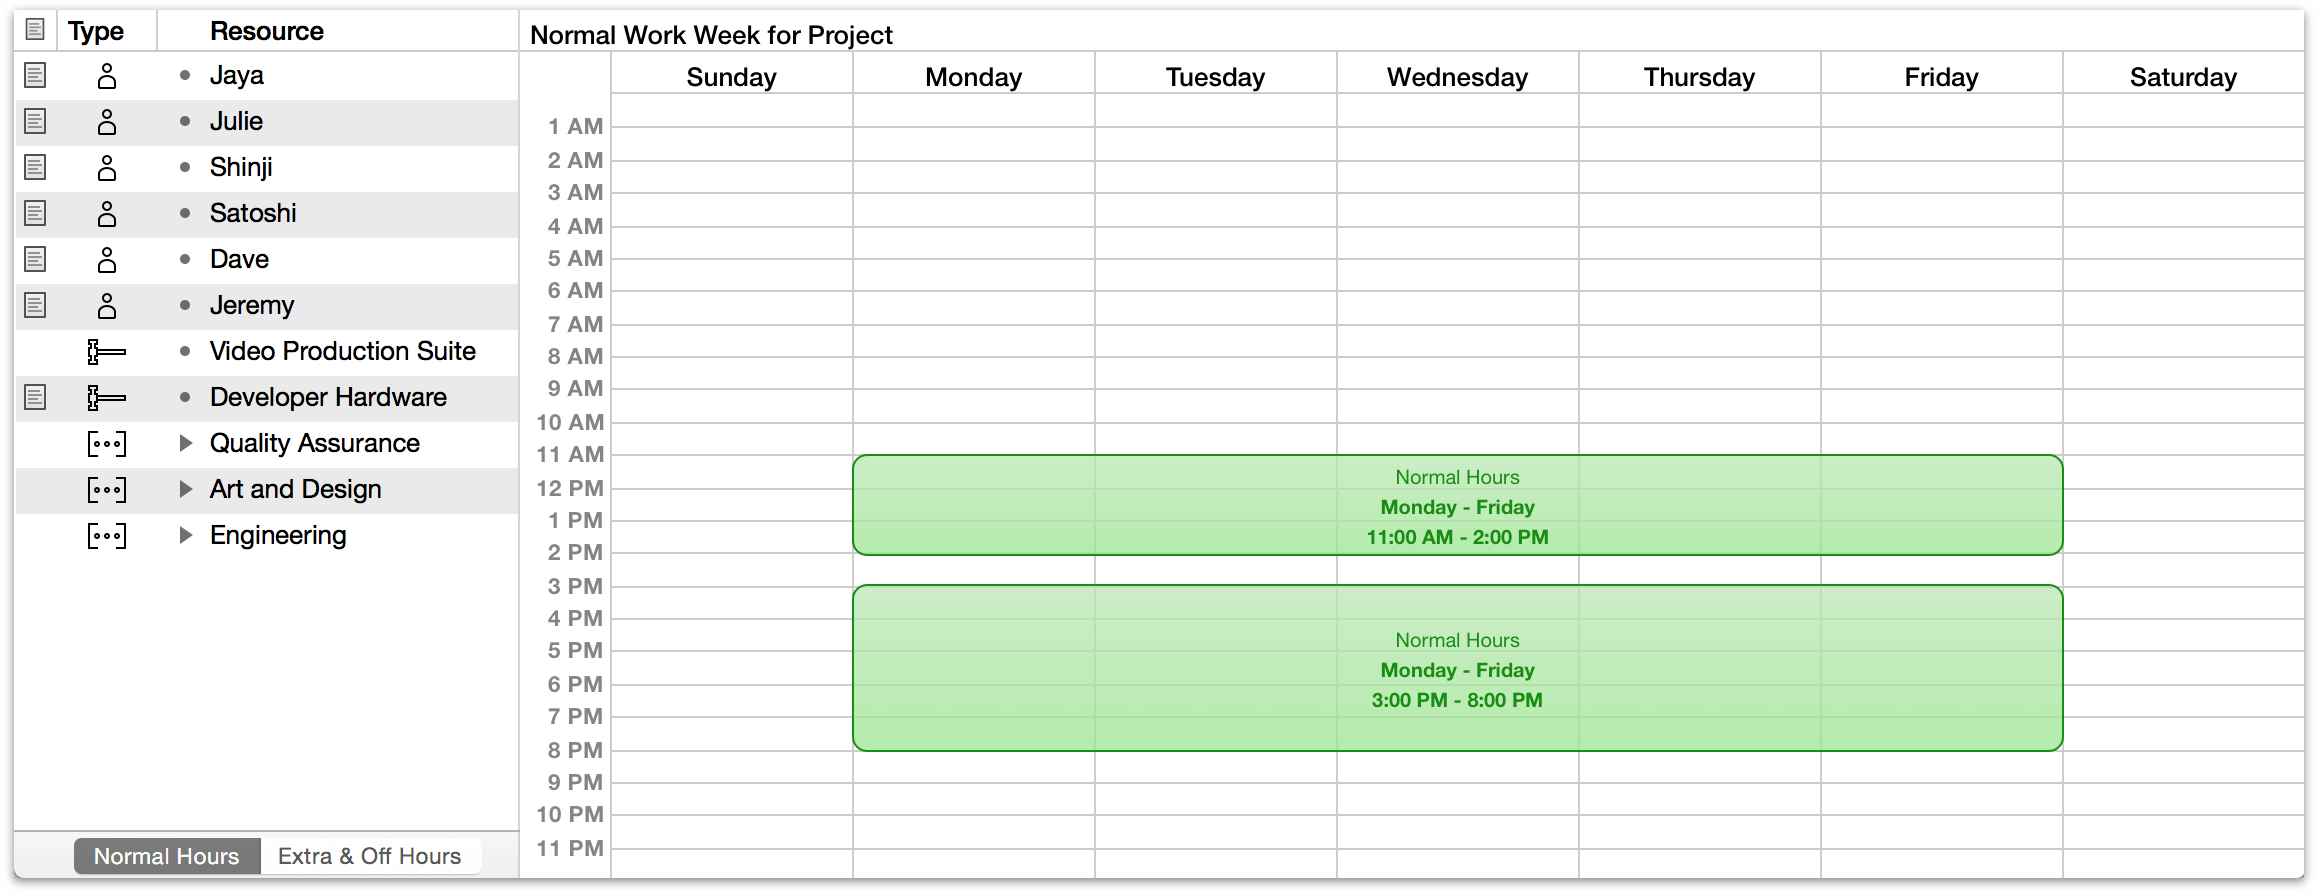 The normal work week for the whole project, as shown in calendar view.